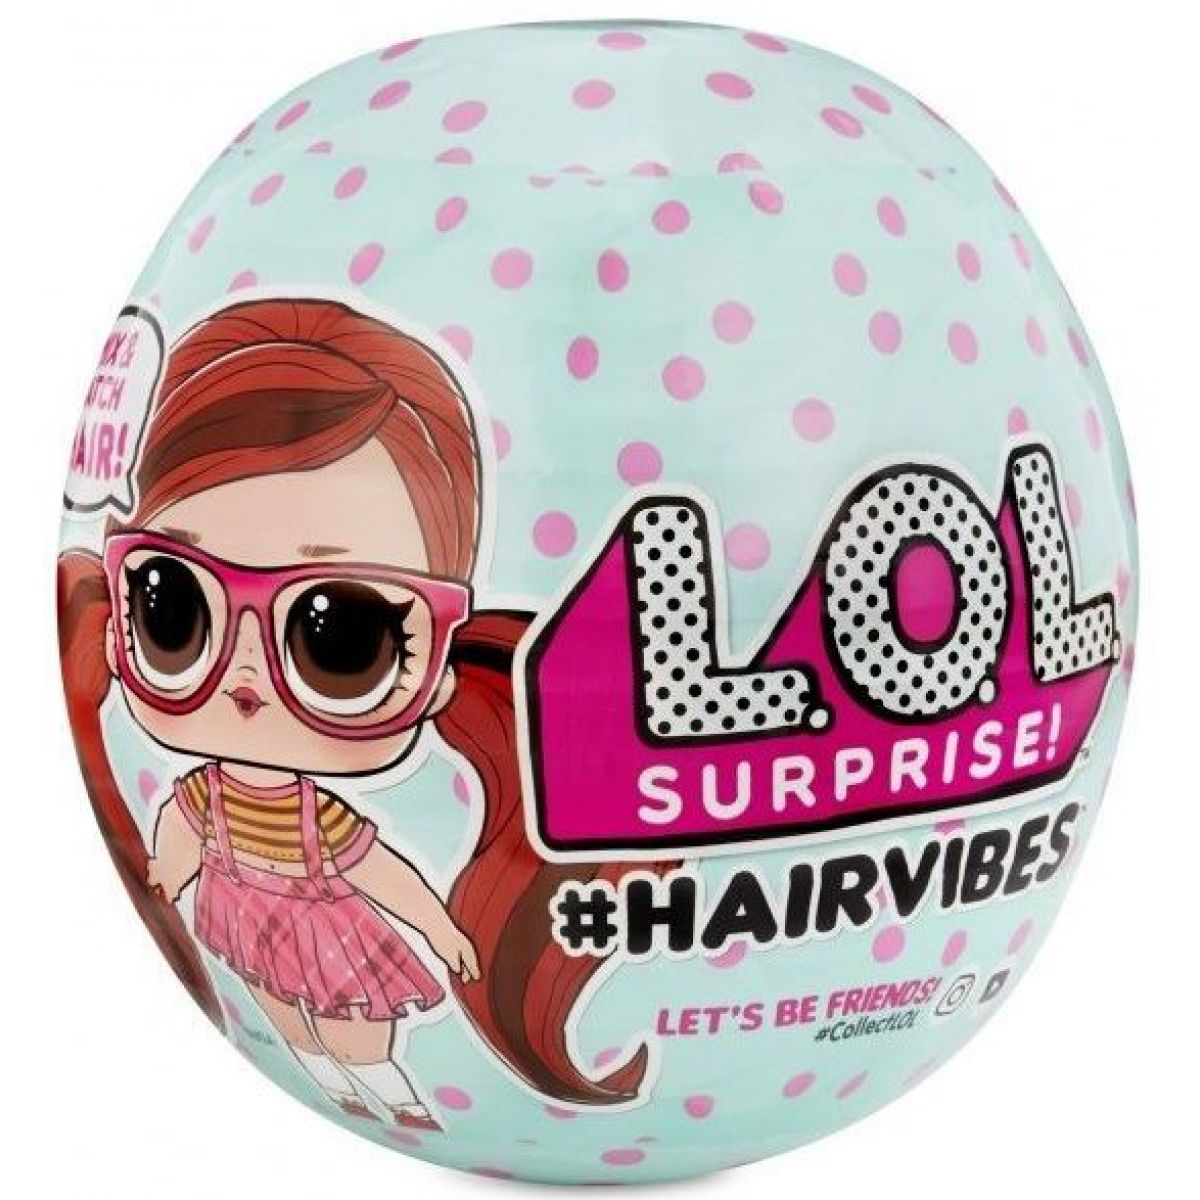 L.O.L. Surprise Hairvibes Česatice